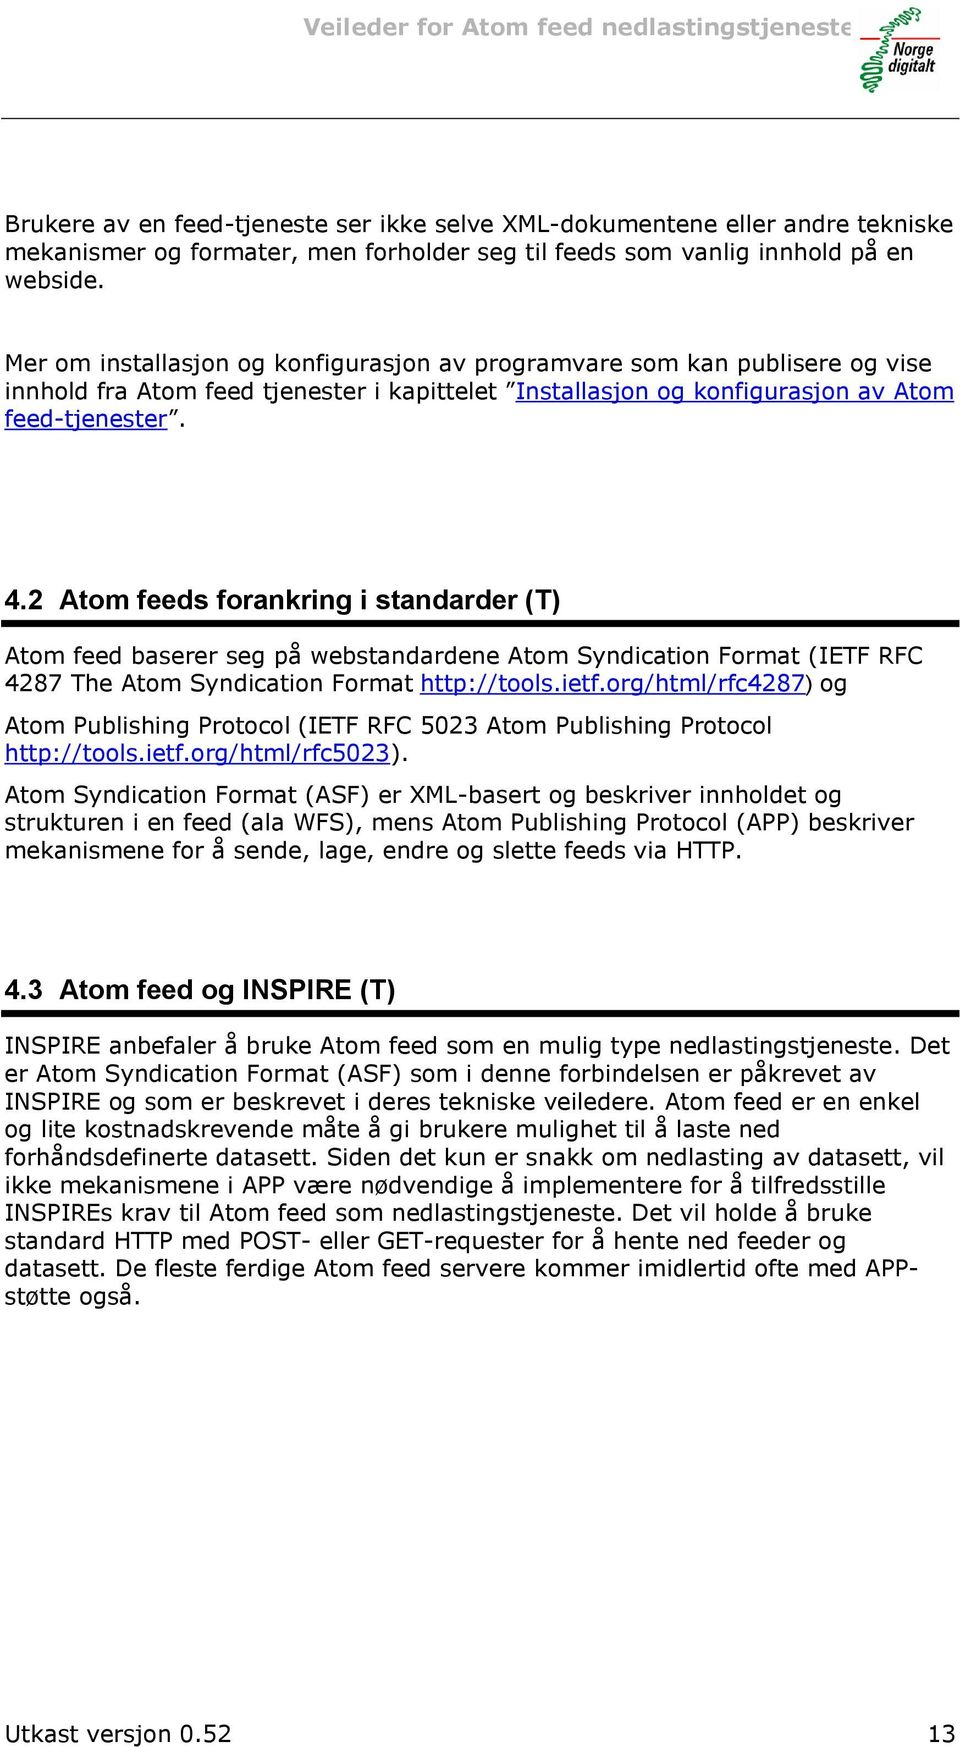 2 Atom feeds forankring i standarder (T) Atom feed baserer seg på webstandardene Atom Syndication Format (IETF RFC 4287 The Atom Syndication Format http://tools.ietf.